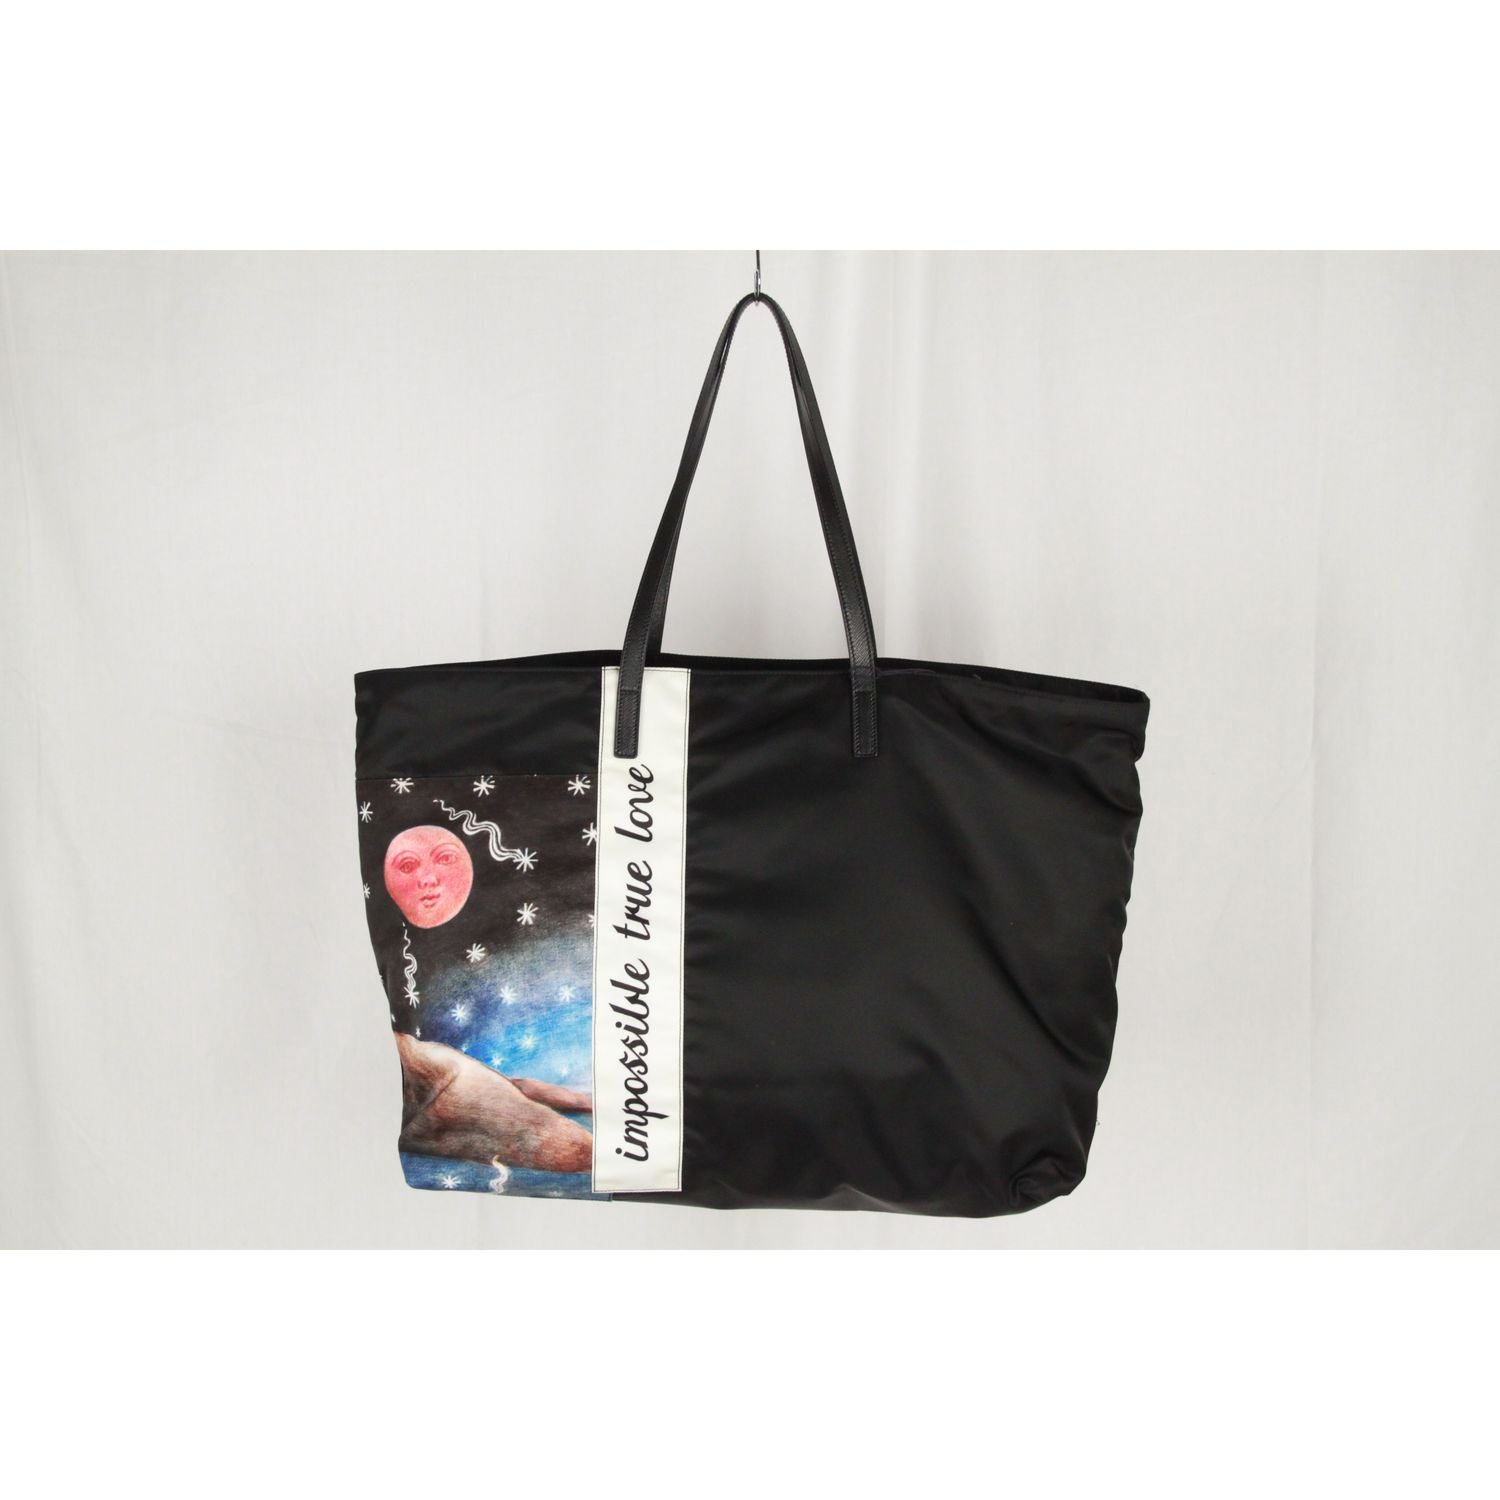 1119b35f09bb Prada Black Tessuto Collage Impossible True Love Large Tote